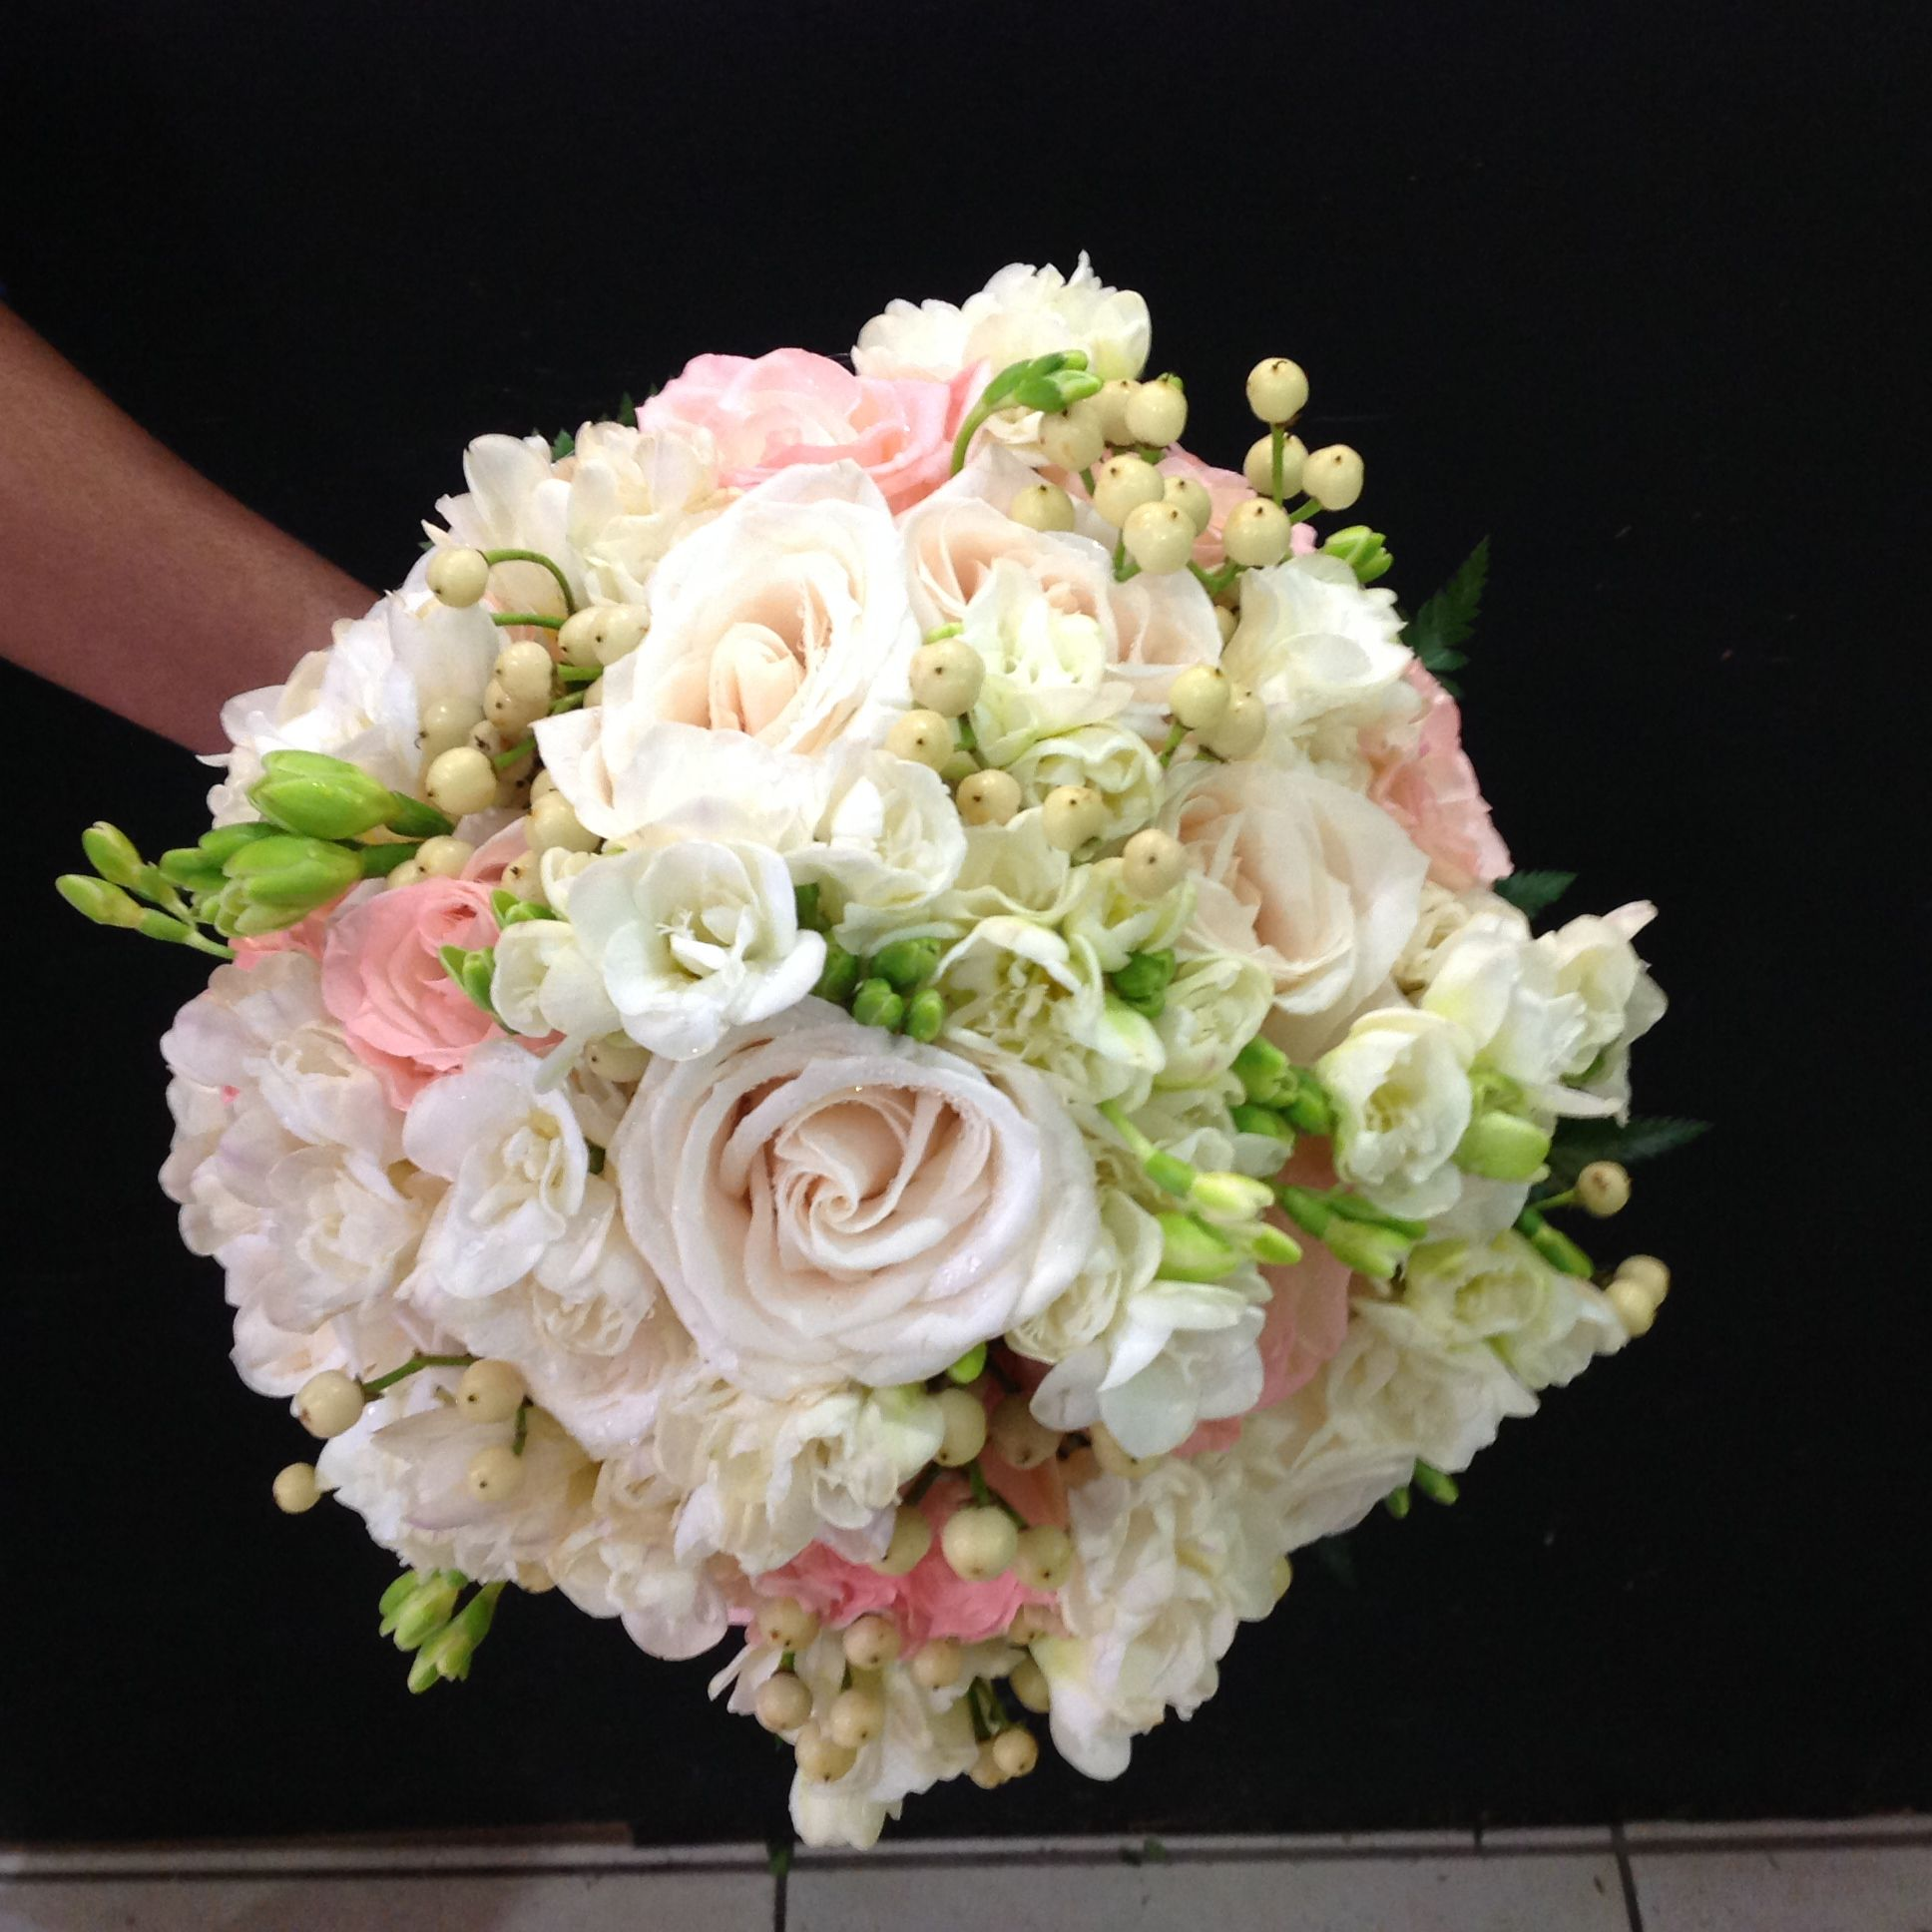 7e5232a904 Hand Tied Bridal Bouquet done with Ivory Roses, Pale pink Roses, White  Freesias and Hypericum Berries. Stems Wrapped with Sheer Ivory Ribbon.